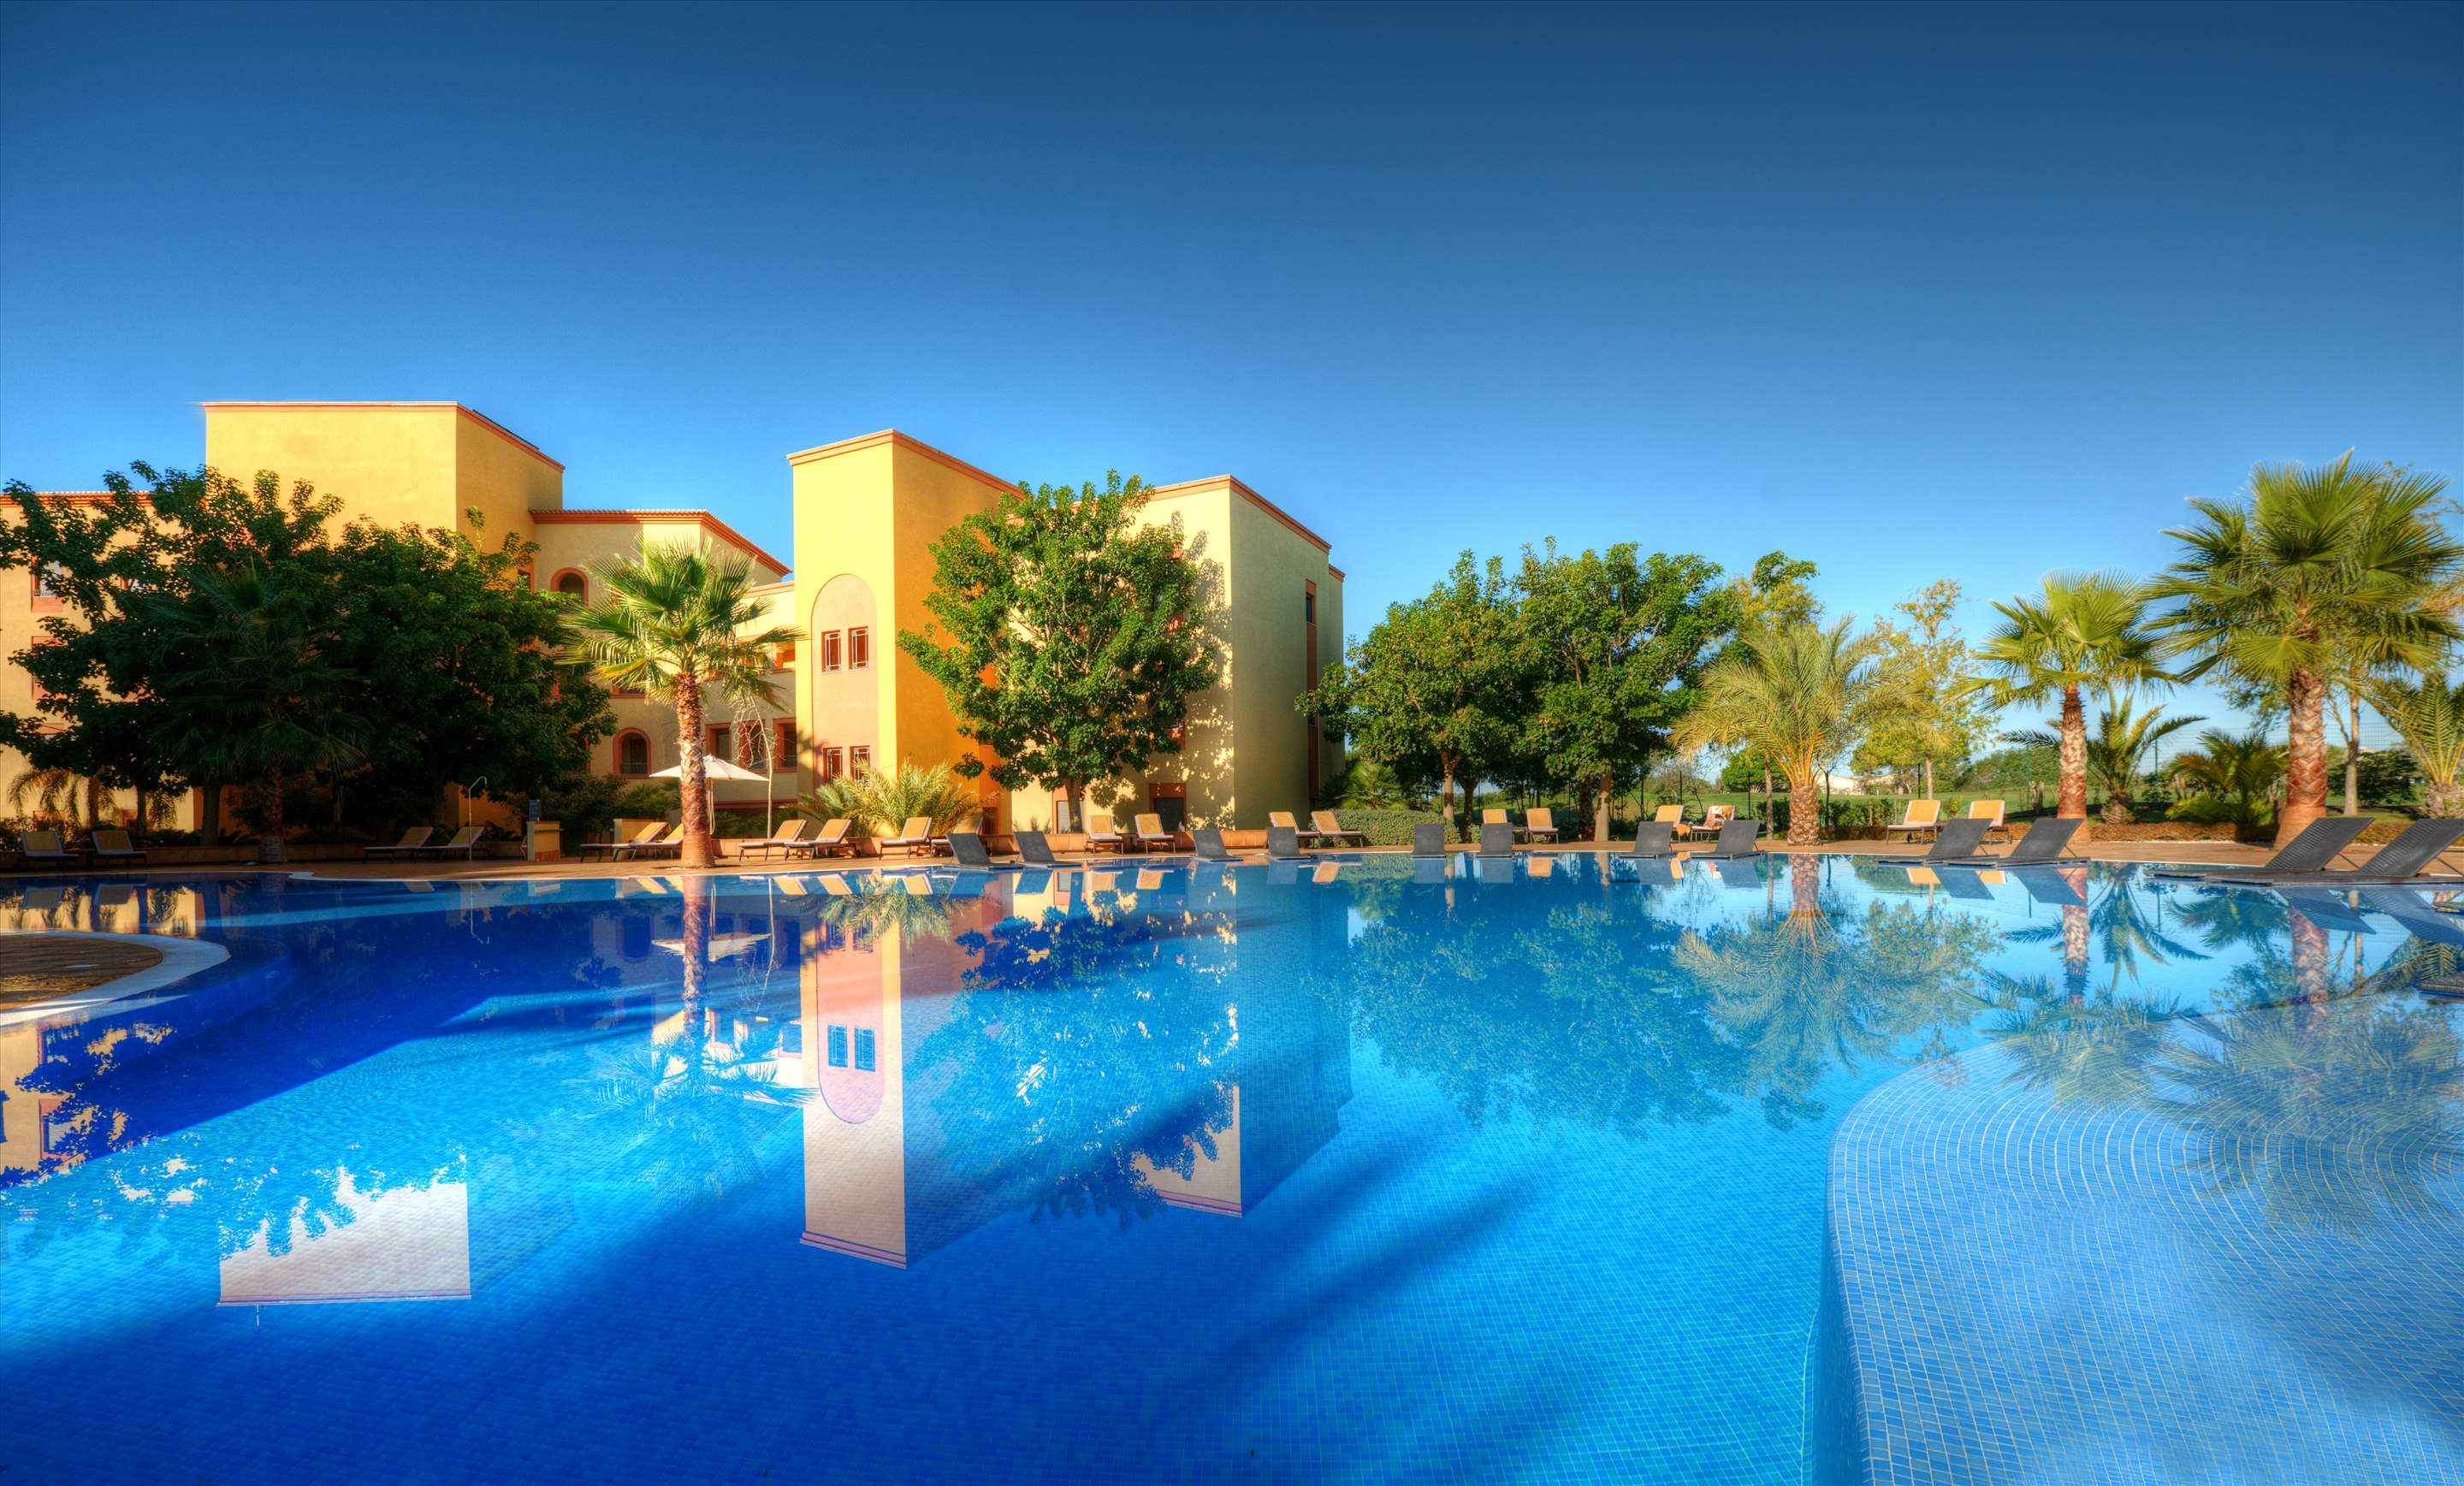 The Residences at Victoria by TIVOLI 3 Bed Apt , 3 bedroom apartment in The Residences at Victoria by TIVOLI, Algarve Photo #2